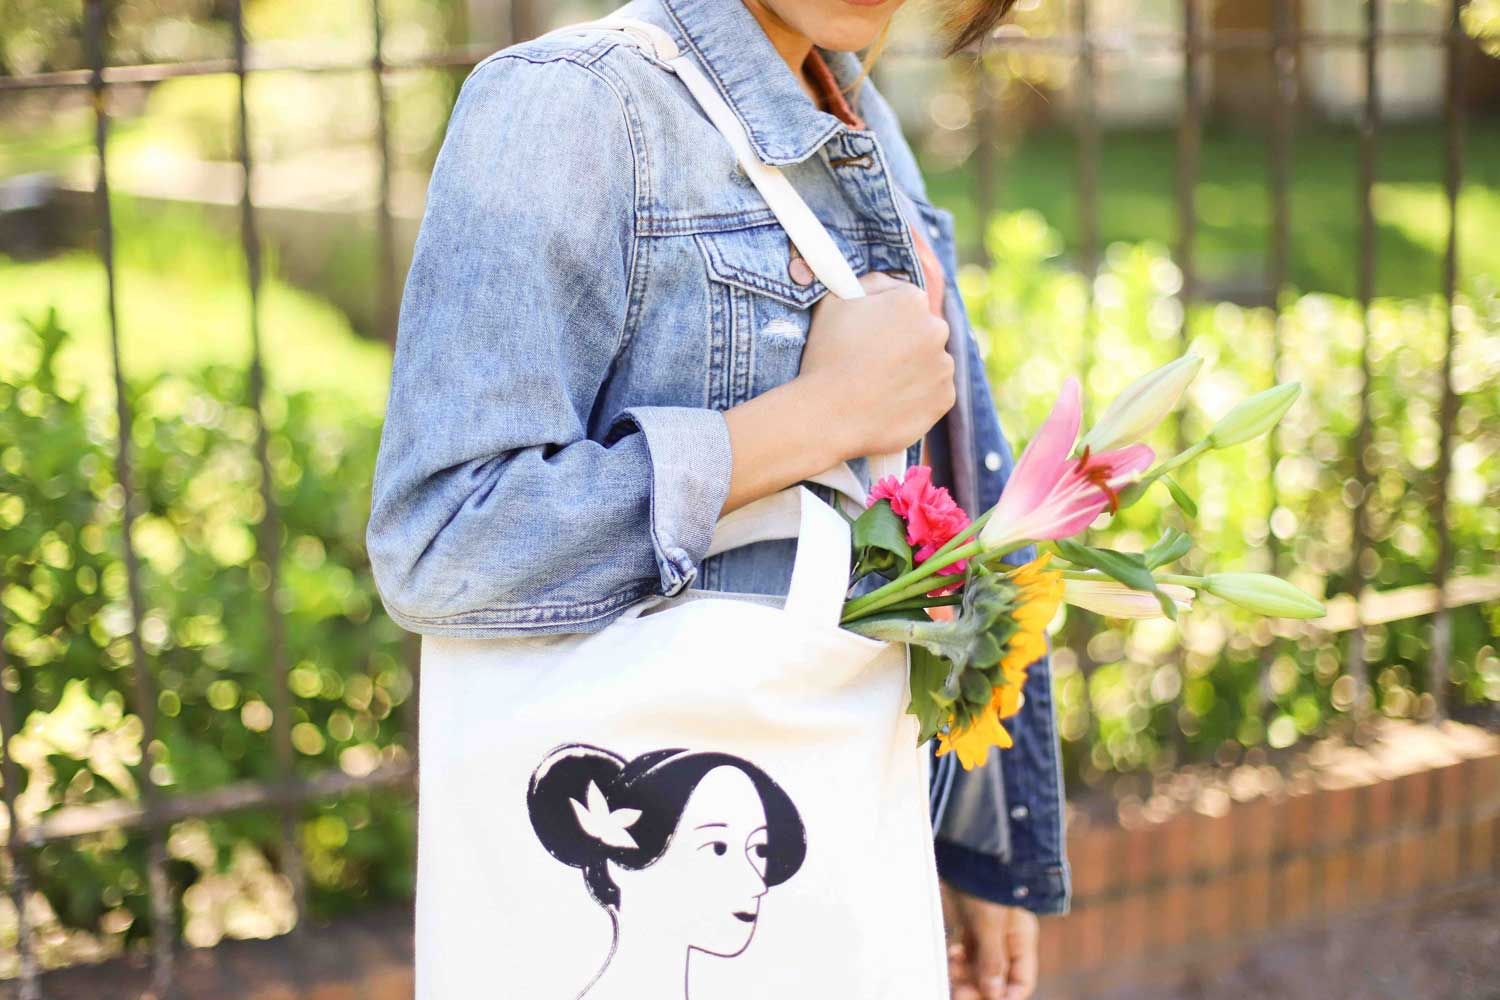 Woman in jean jacket carrying white tote with flowers in it